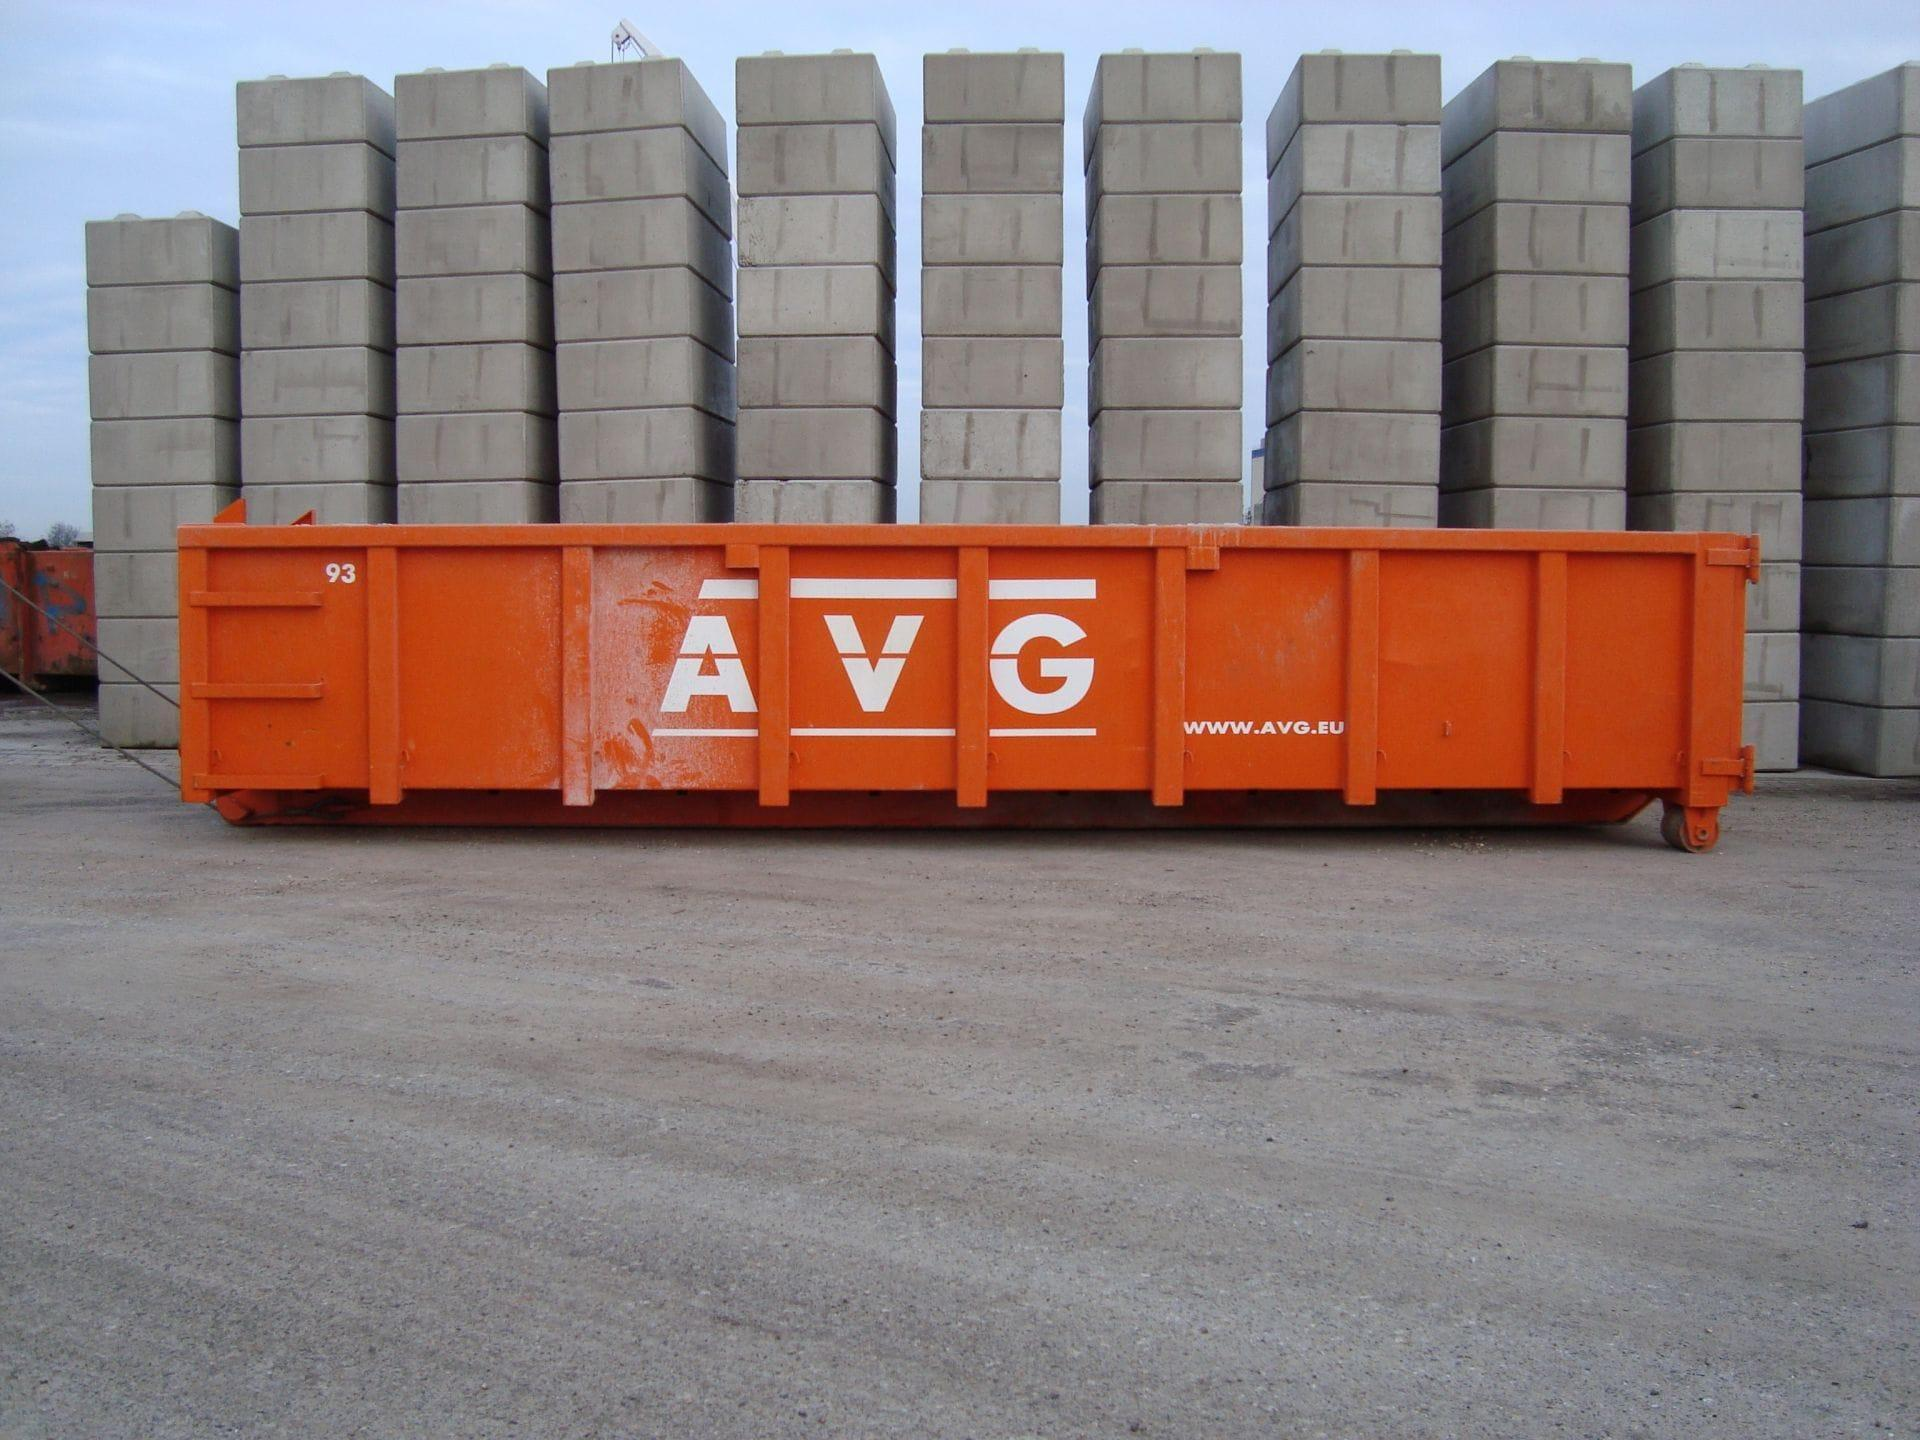 lange-container-11-avg-bouwstoffen